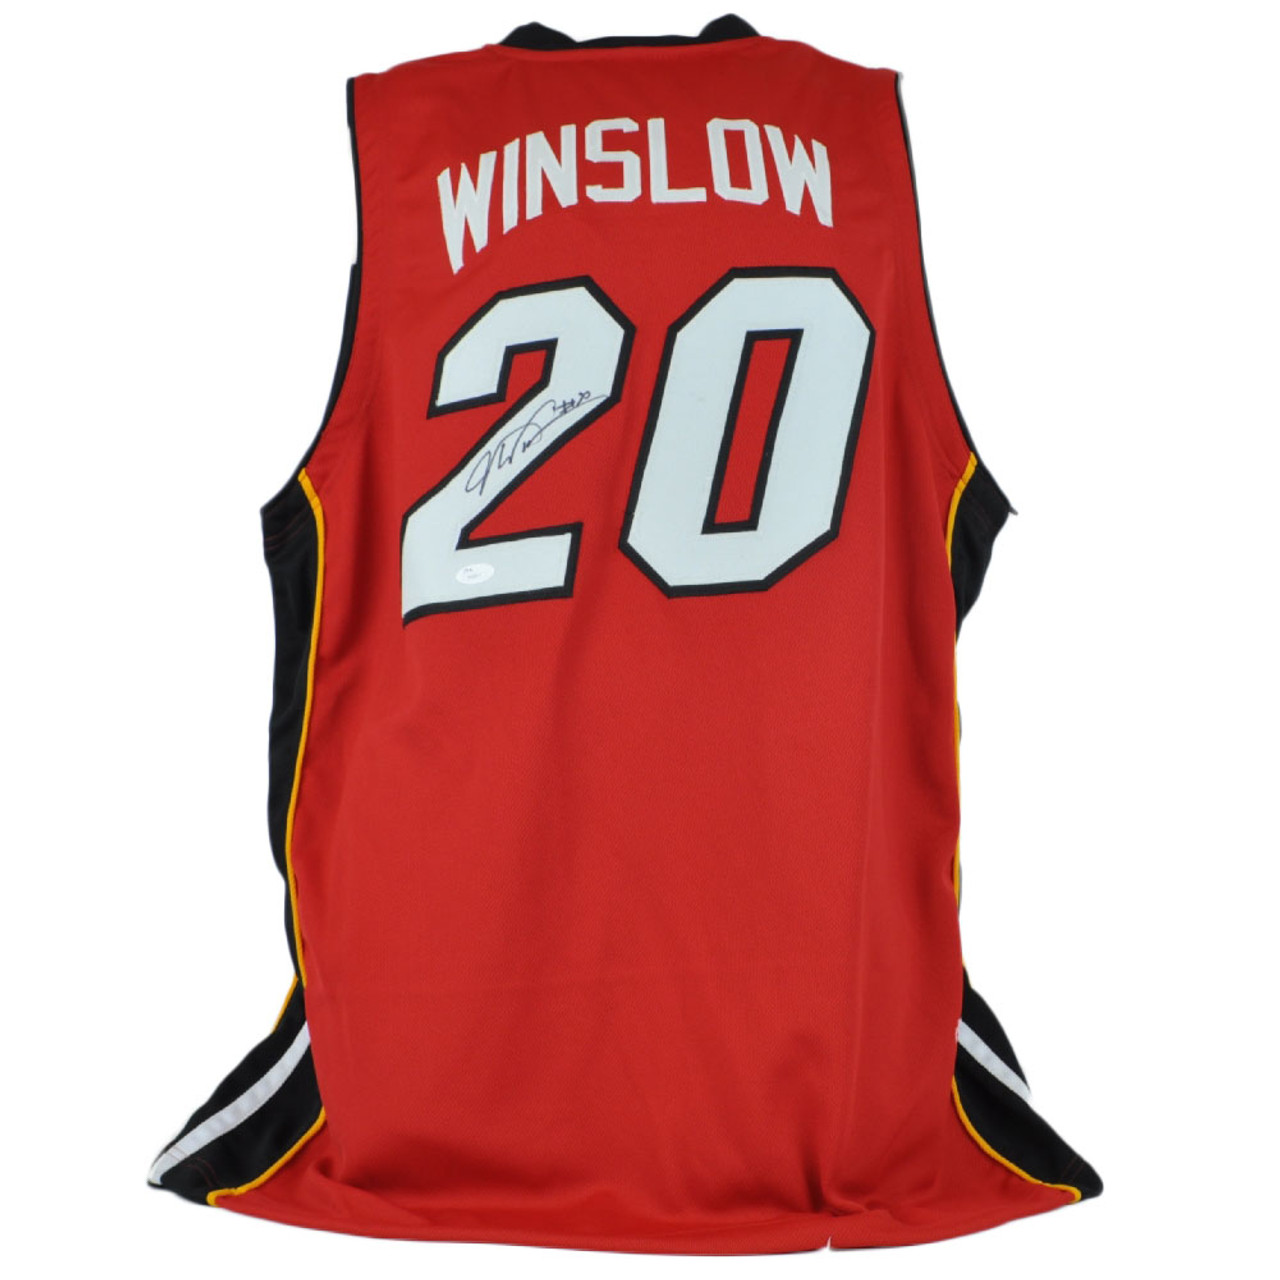 NBA Miami Heat Justise Winslow #20 Autographed Large Jersey JSA Certified Red